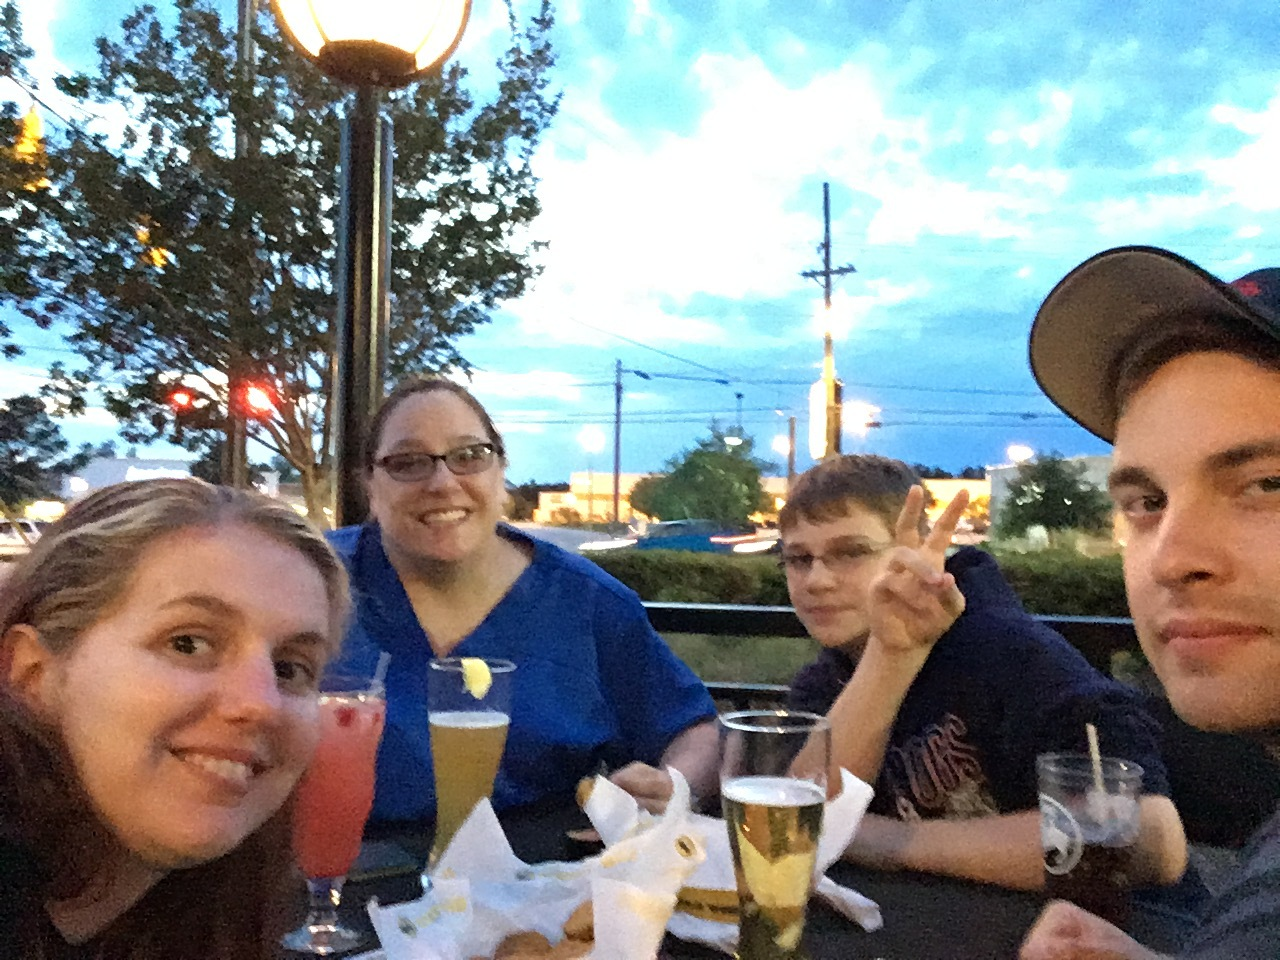 2012 || The ex-roommate and her kid asked us to join them at BWW's for dinner. Since we hadn't hung out in a while, we said sure. It was nice to catch up with them and see how things are going now that we no longer live together.